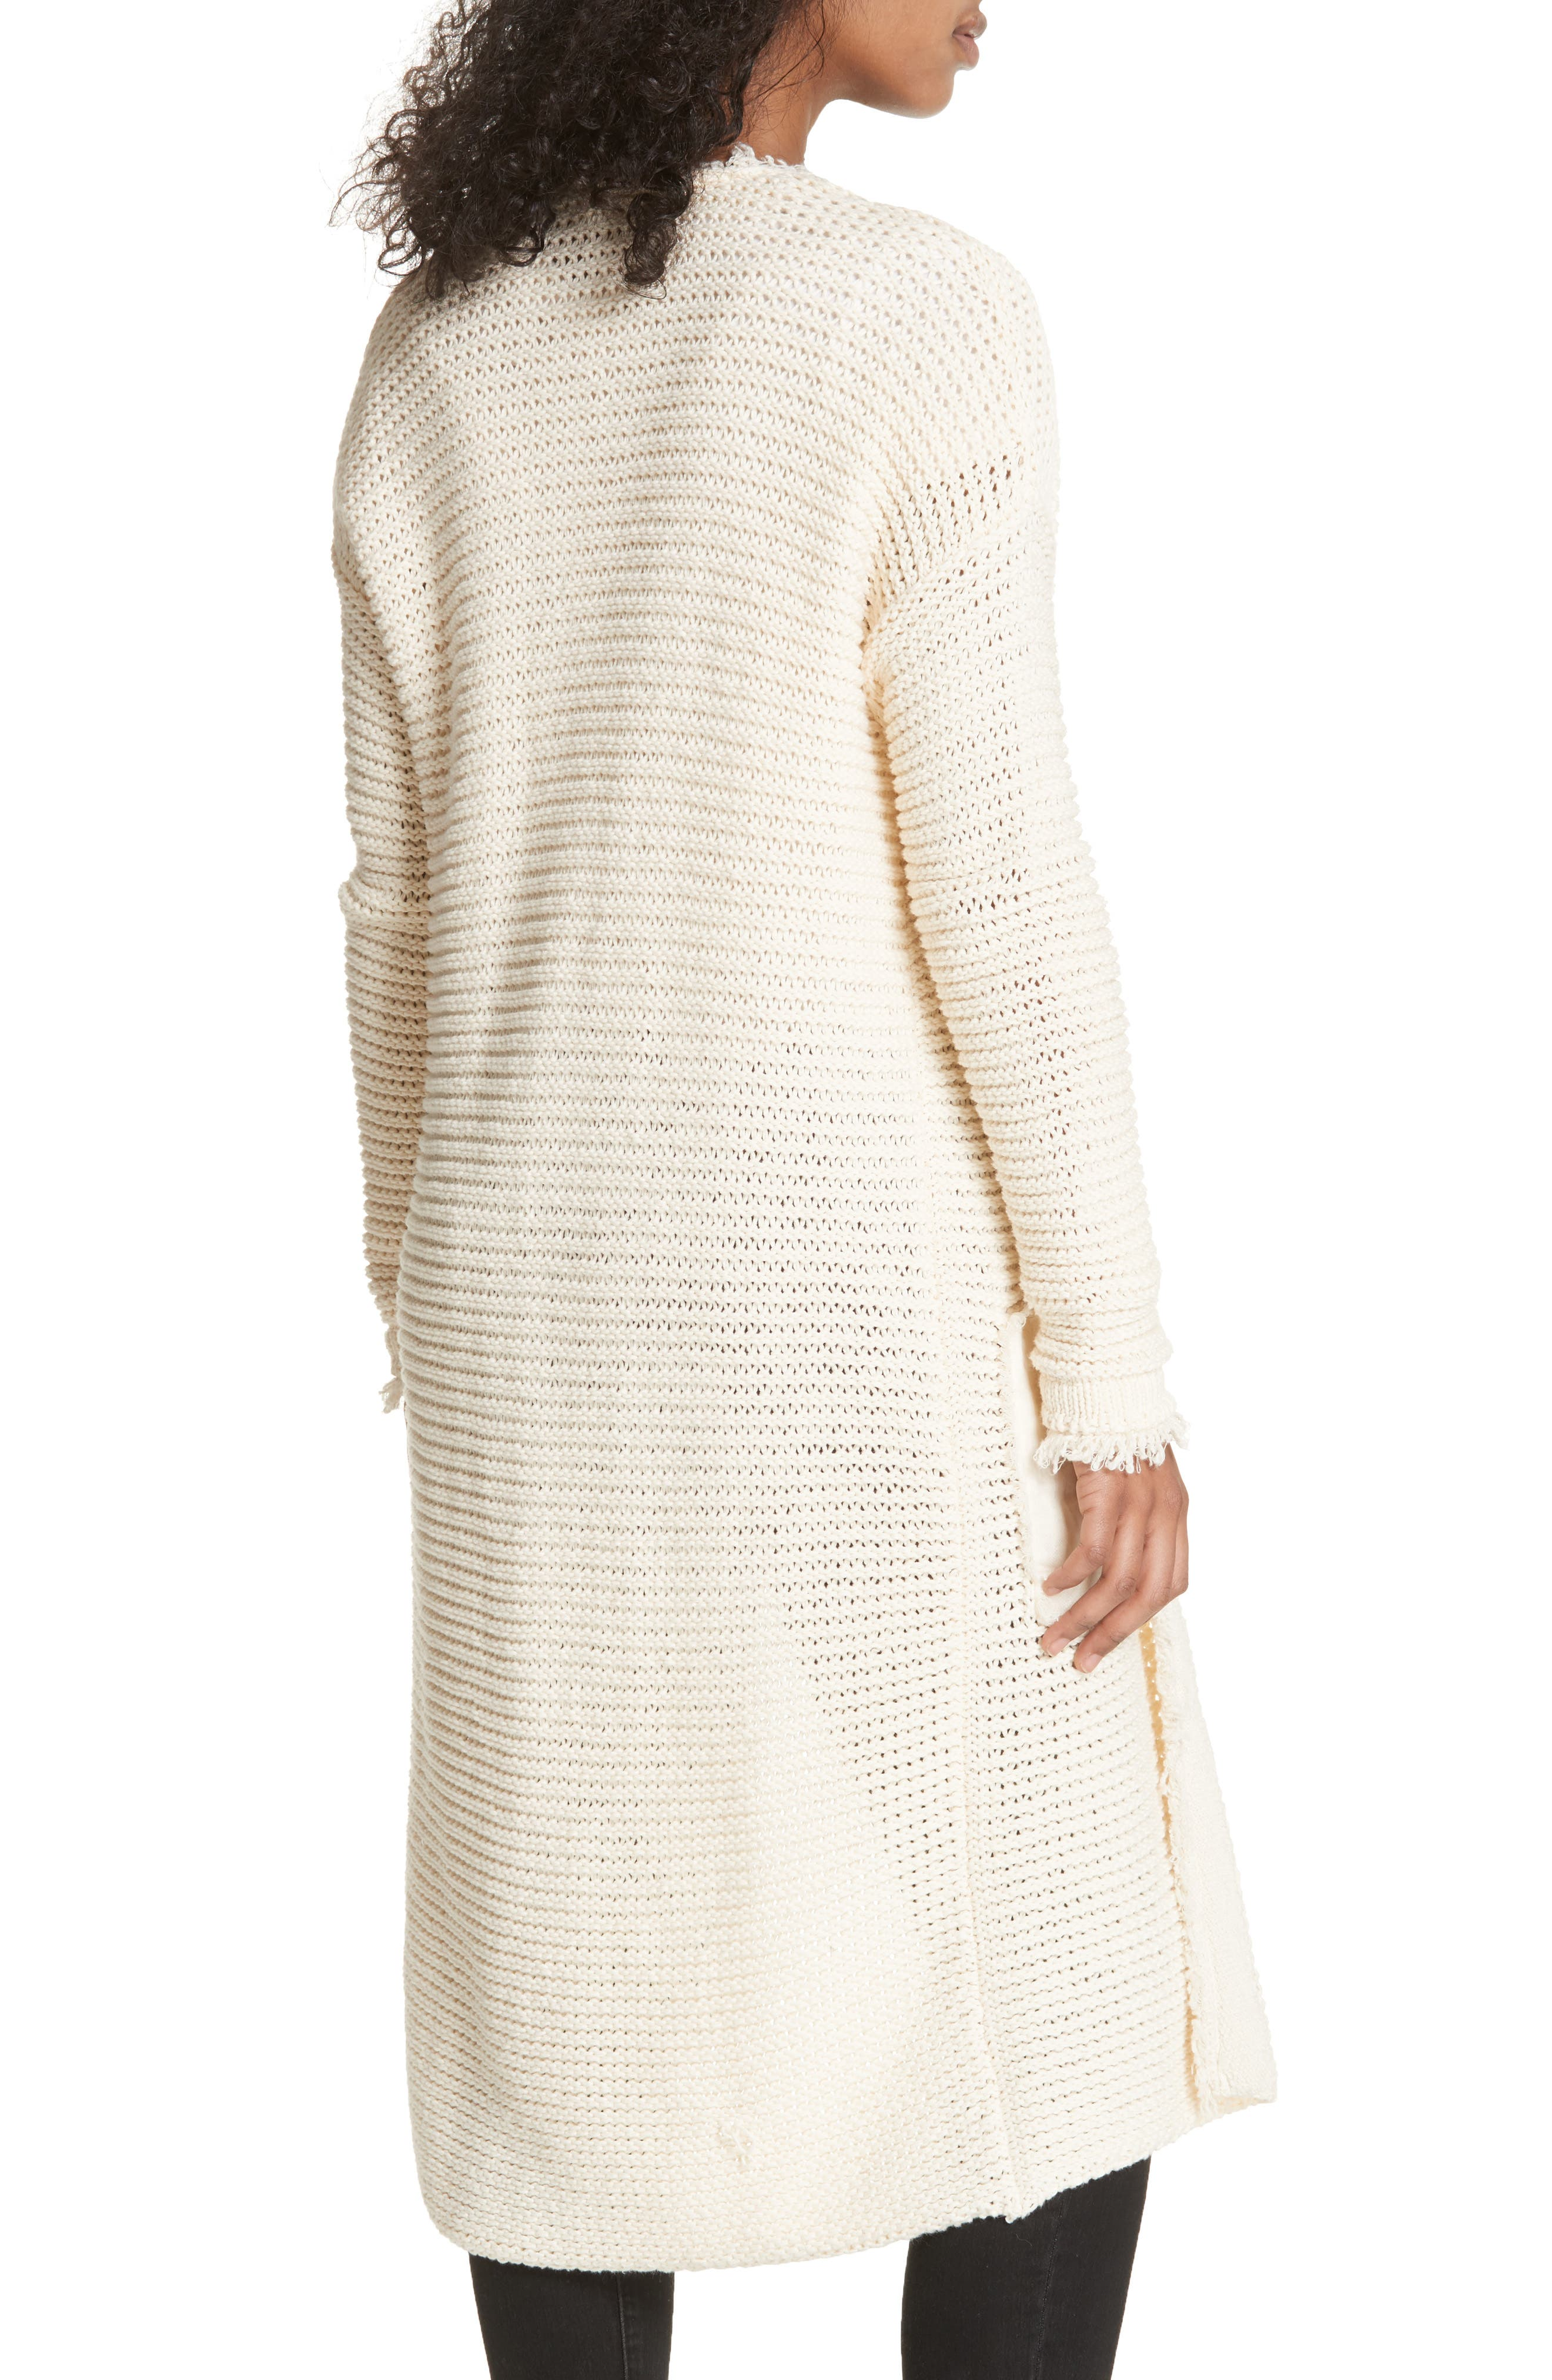 Woodstock Longline Cardigan,                             Alternate thumbnail 2, color,                             Ivory